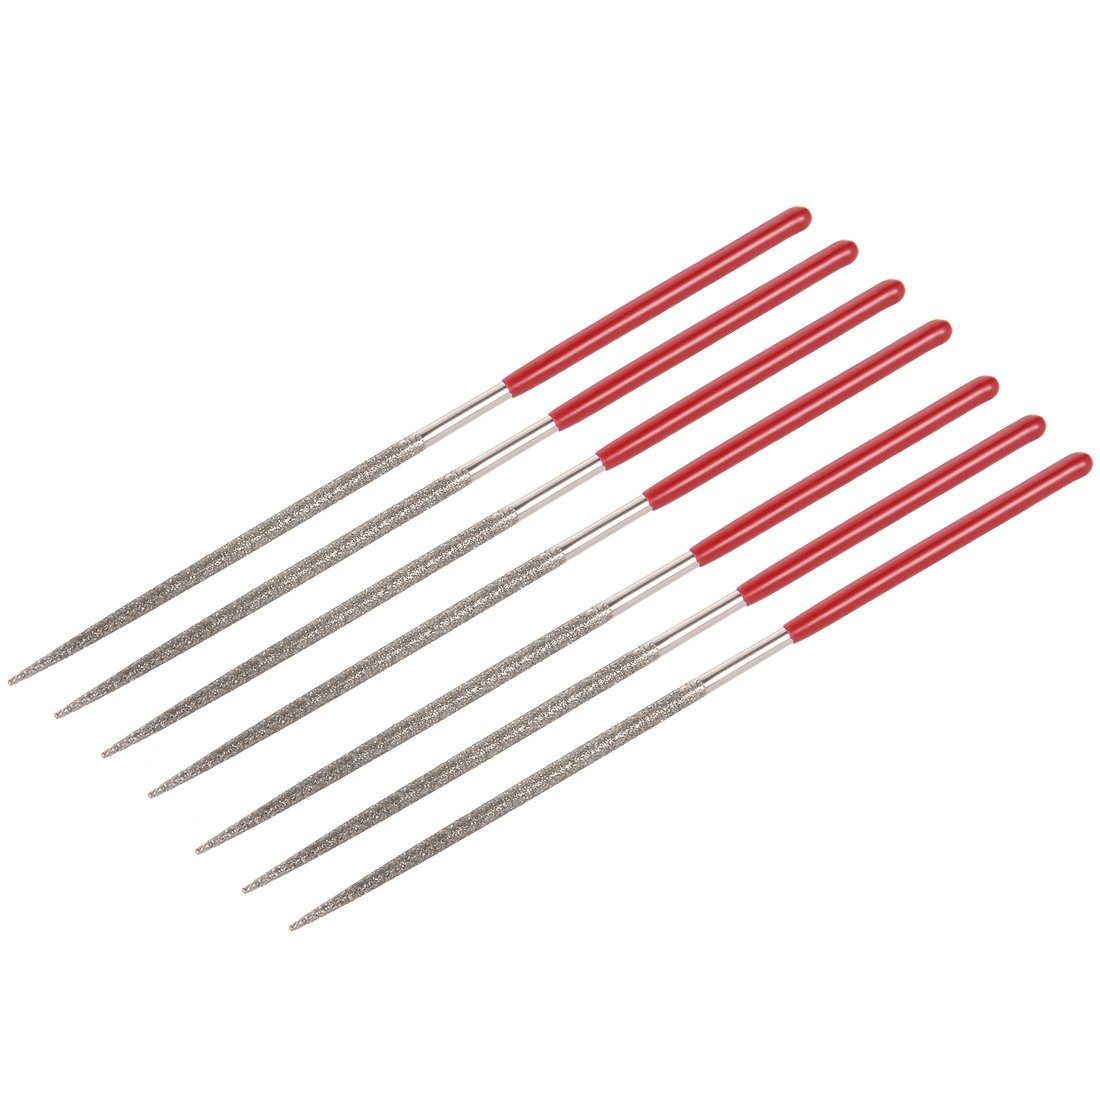 sourcingmap 10Pcs 3mm x 140mm Diamond Needle File Set for Metal Glass Stone